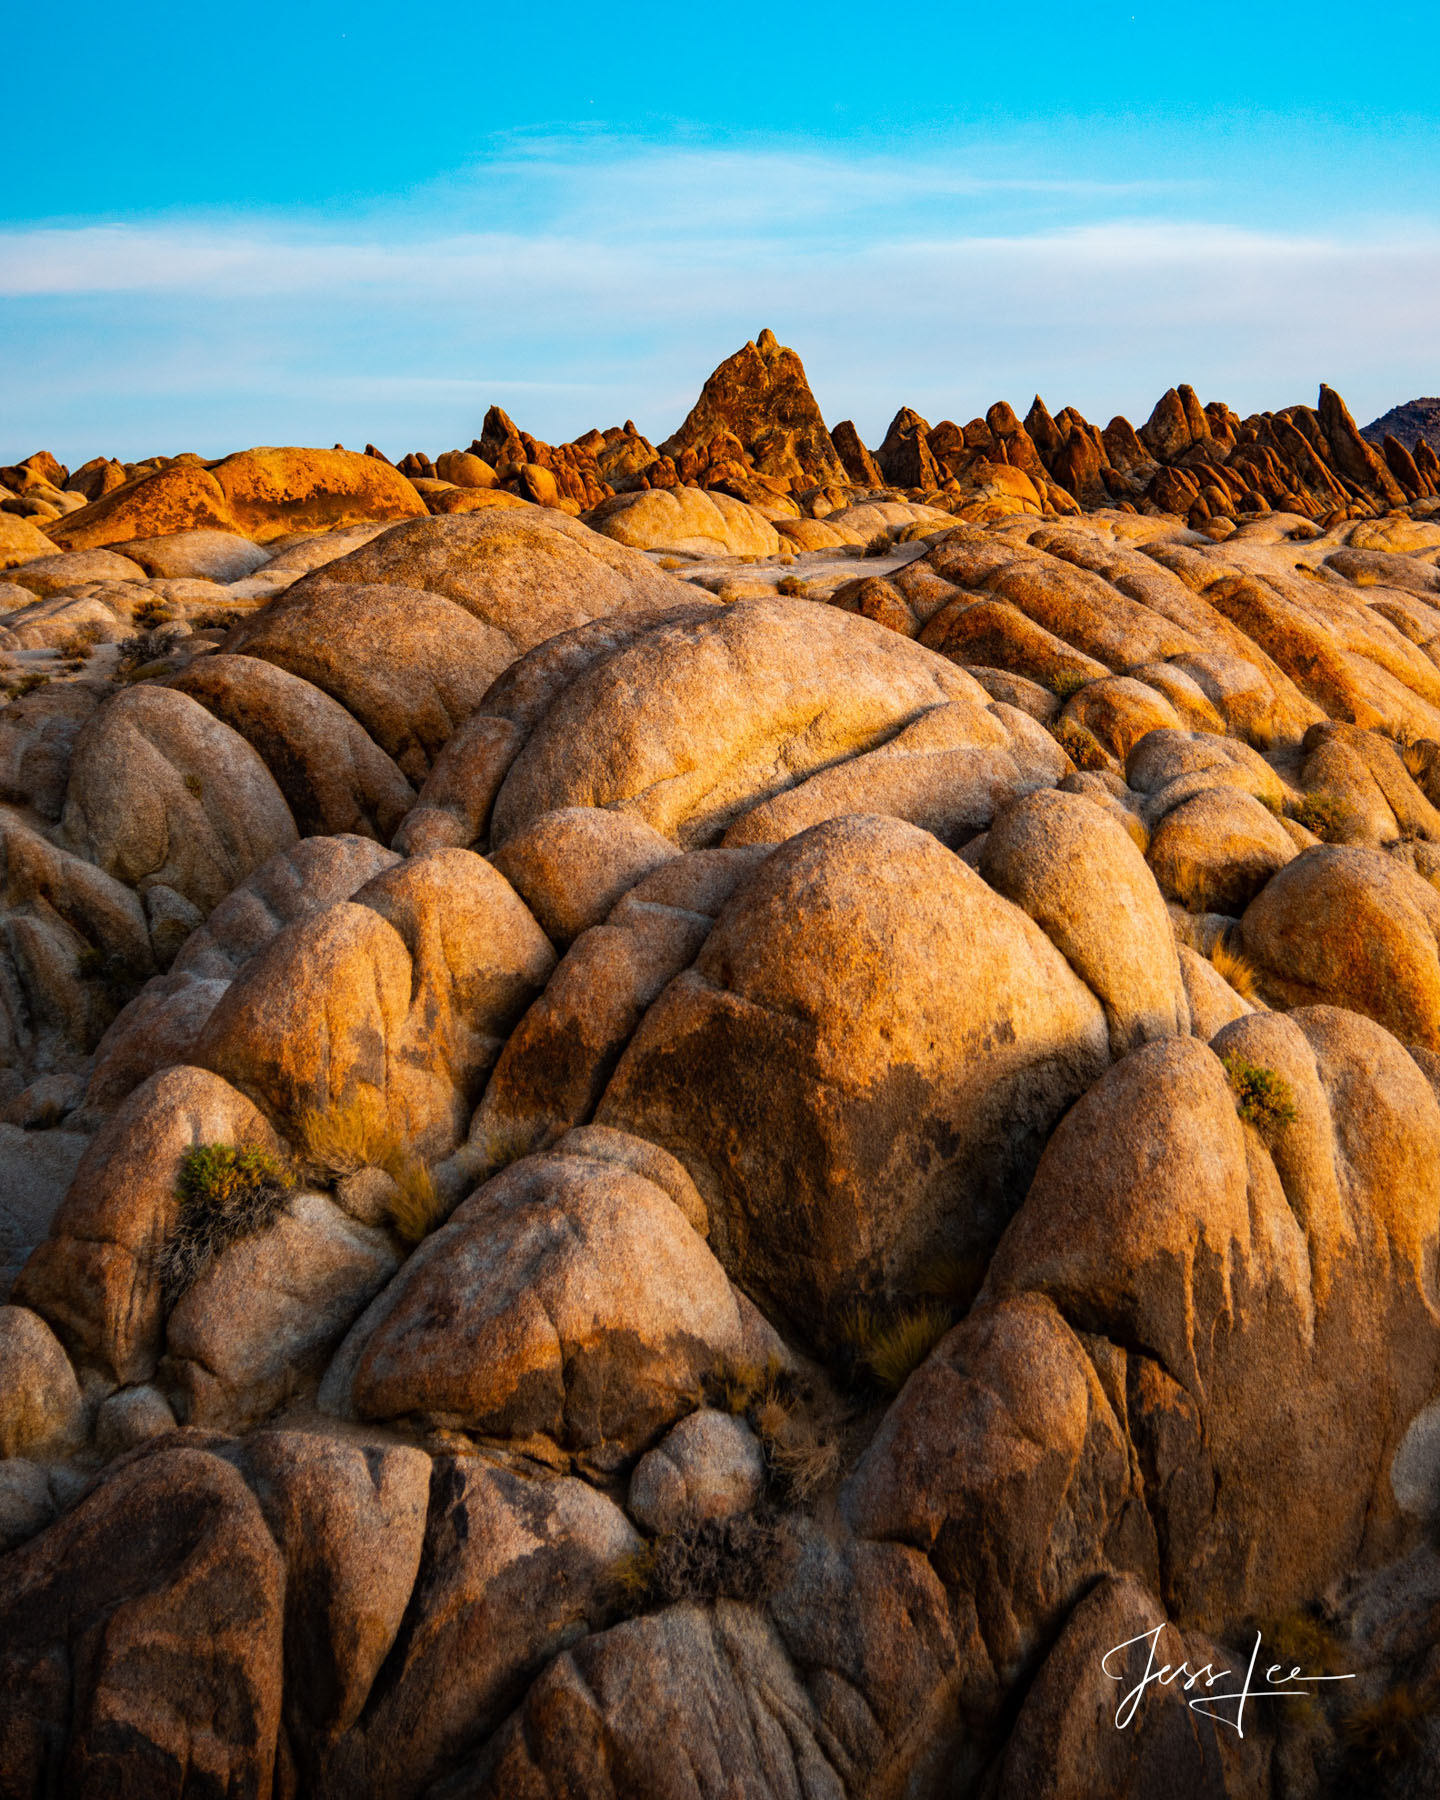 California's Alabama Hills. Limited Edition of 50 Exclusive high-resolution Museum Quality Fine Art Prints of Vertical Landscapes...